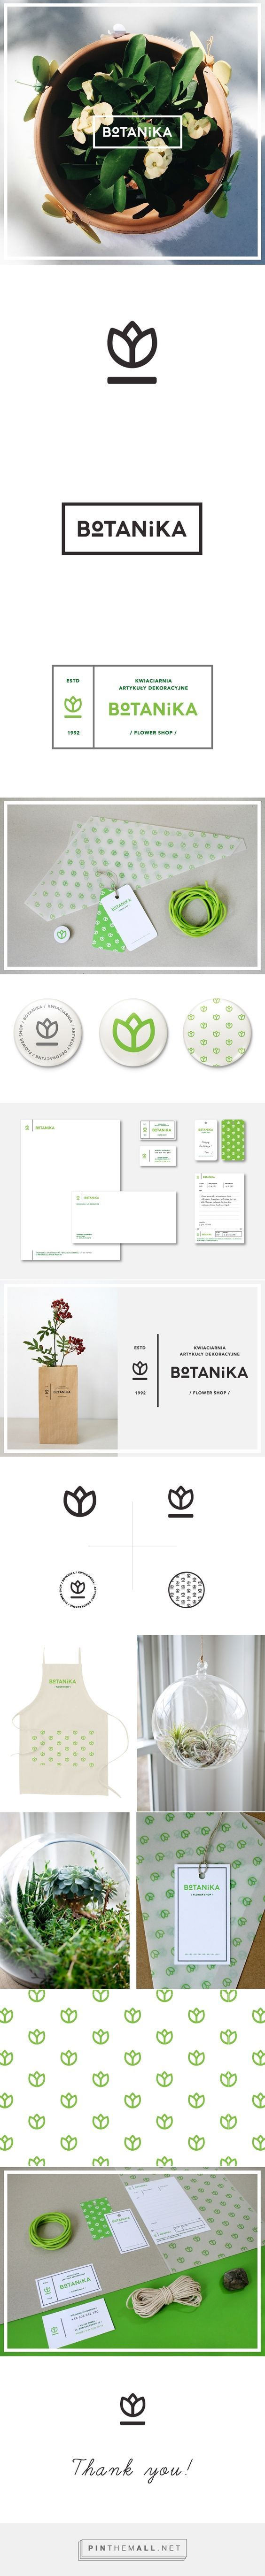 Botanika Branding on Behance | Fivestar Branding – Design and Branding Agency & Inspiration Gallery